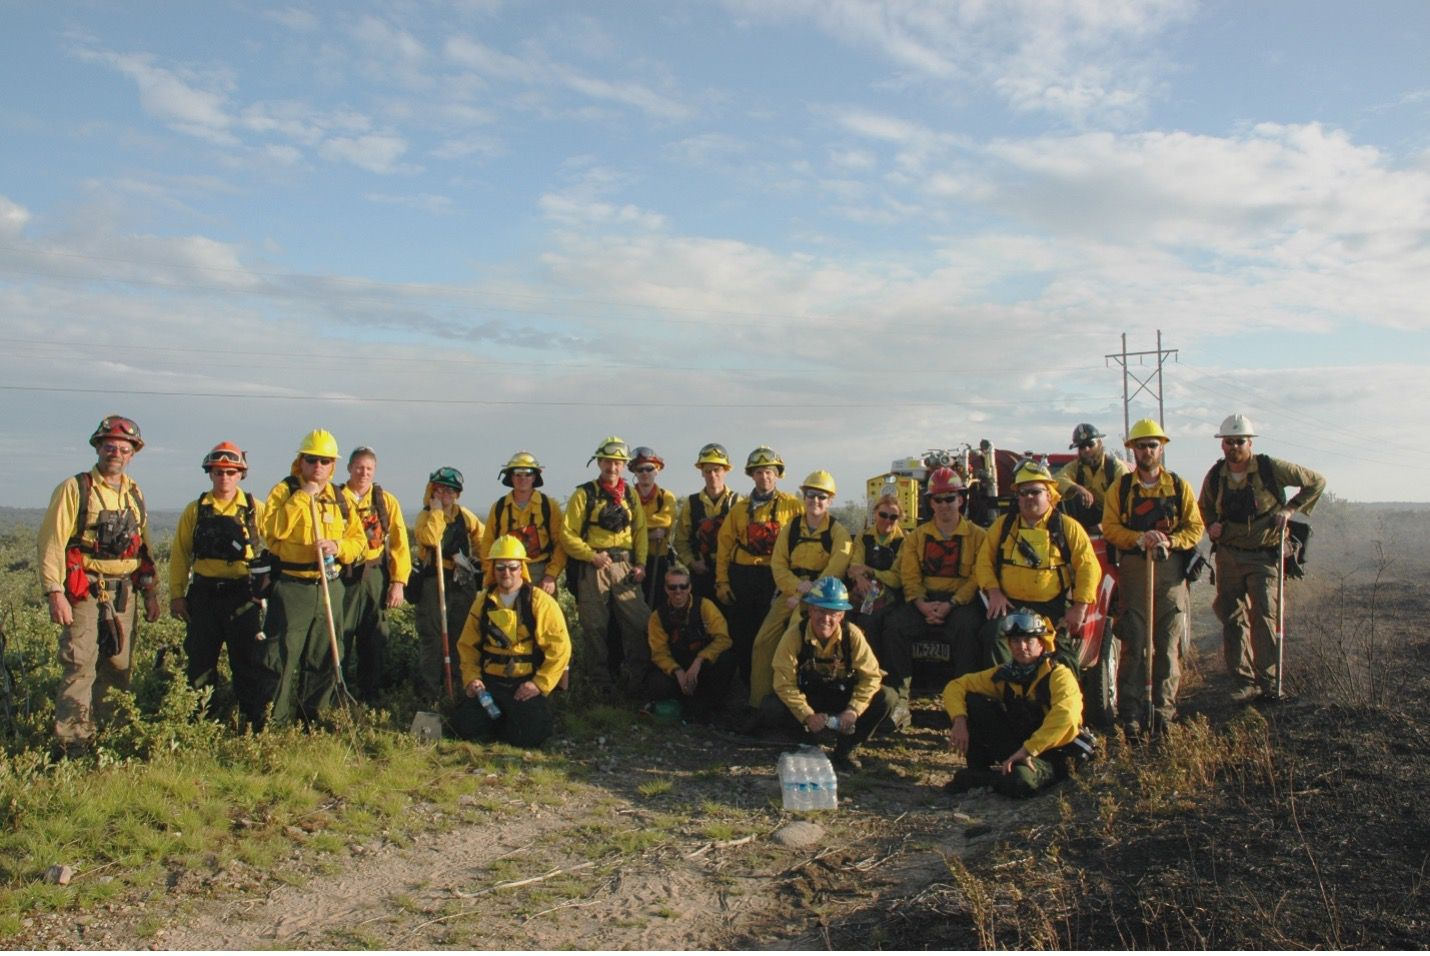 Two dozen people wearing yellow fire gear pose together in a group in an open field at the end of a controlled burn.